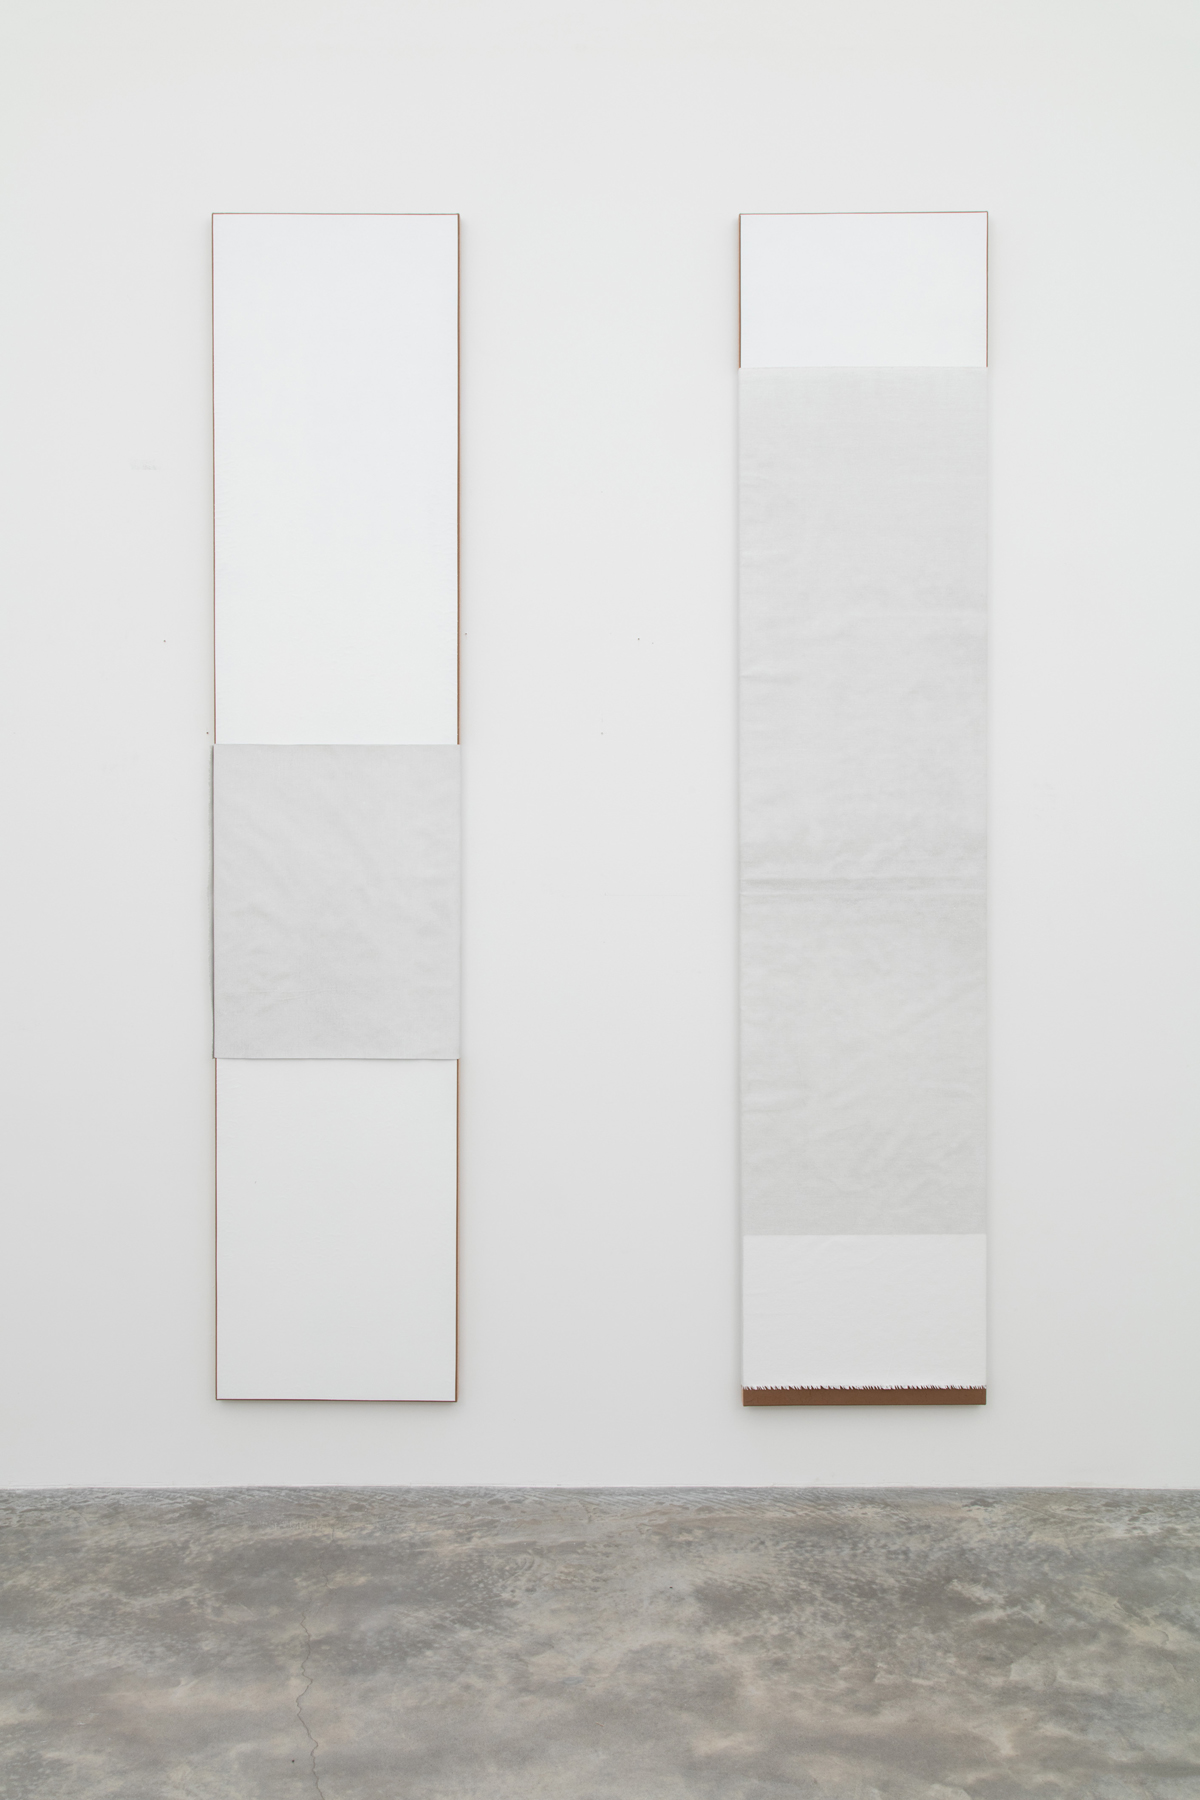 N. Dash Untitled, 2017; adobe, acrylic, pigment, gesso, linen, jute, wood support; photo Jean Vong; Courtesy the artist, Casey Kaplan Gallery, New York, and Mehdi Chouakri, Berlin